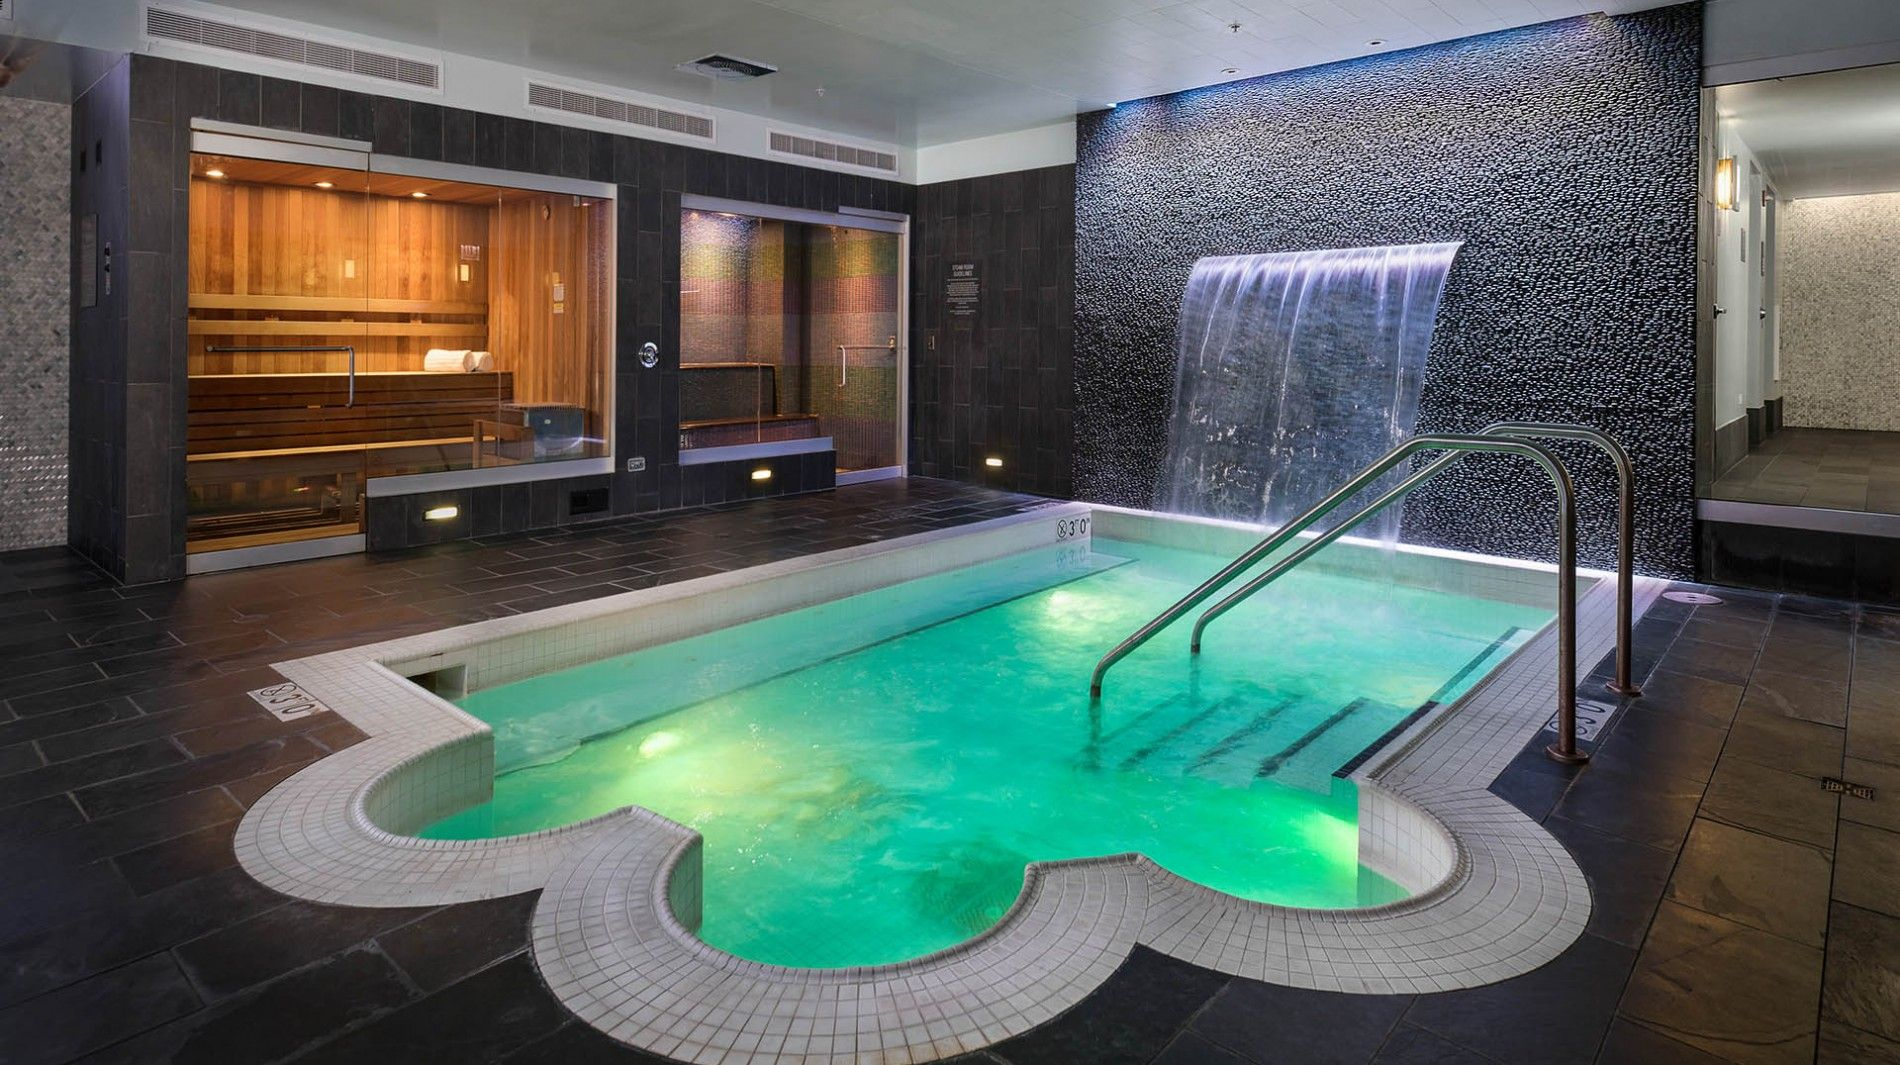 Looking For A Luxury Apartment With An Indoor Pool Downtown Apartment Company Indoor Pool Luxury Apartments Indoor Spa